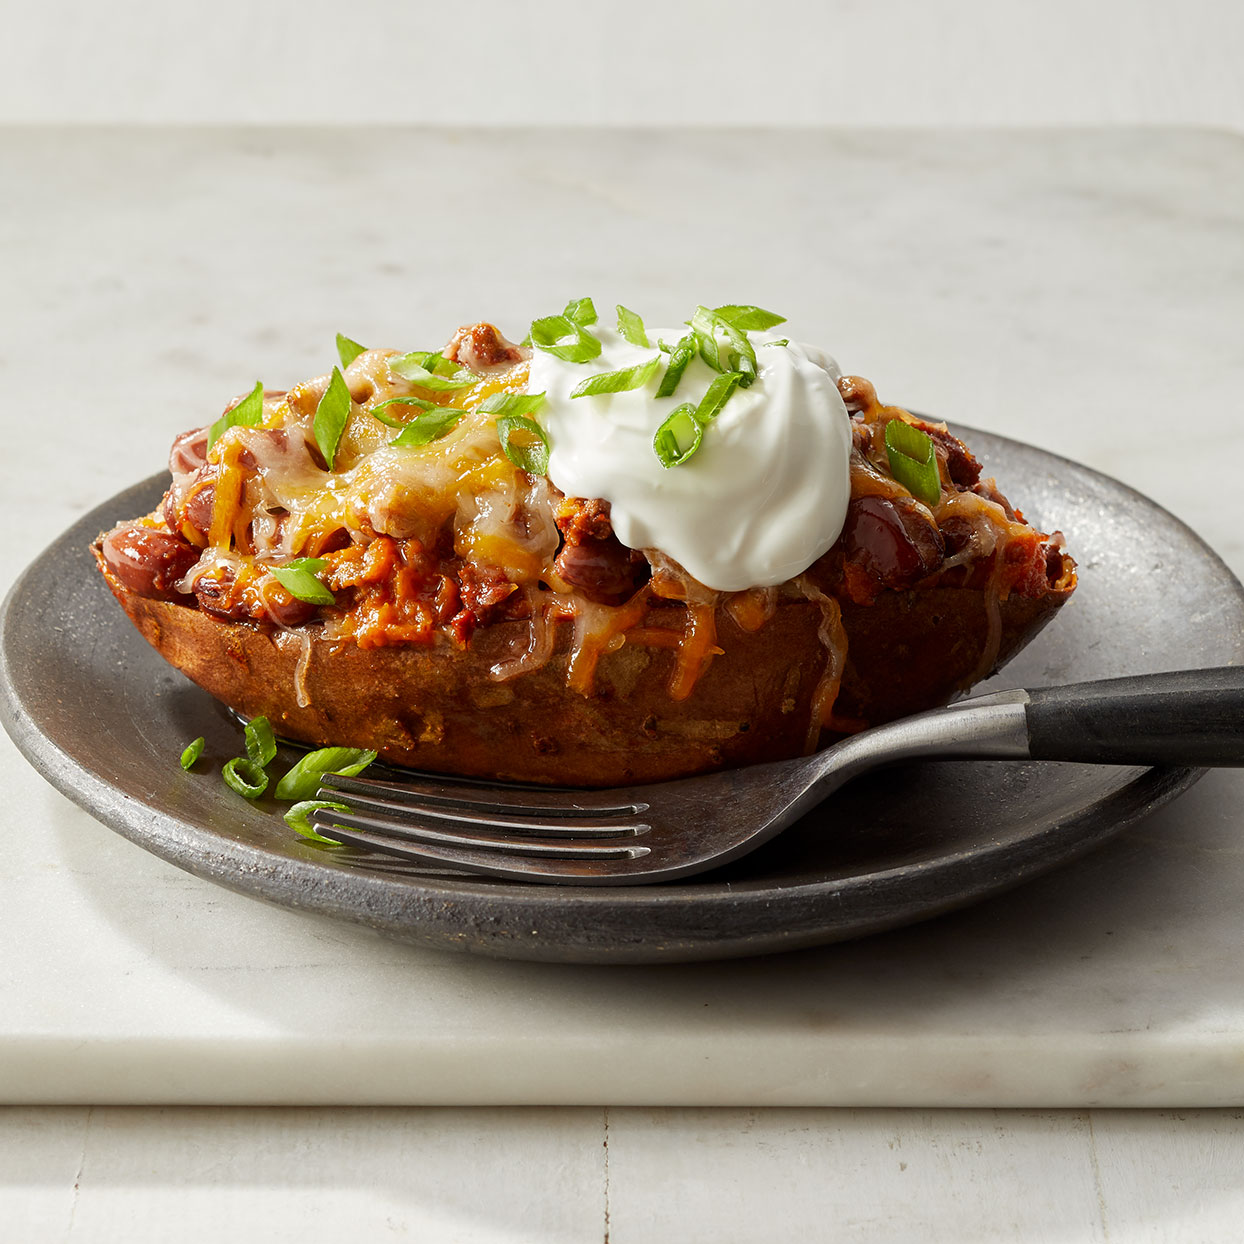 Stuffed Sweet Potatoes with Chili